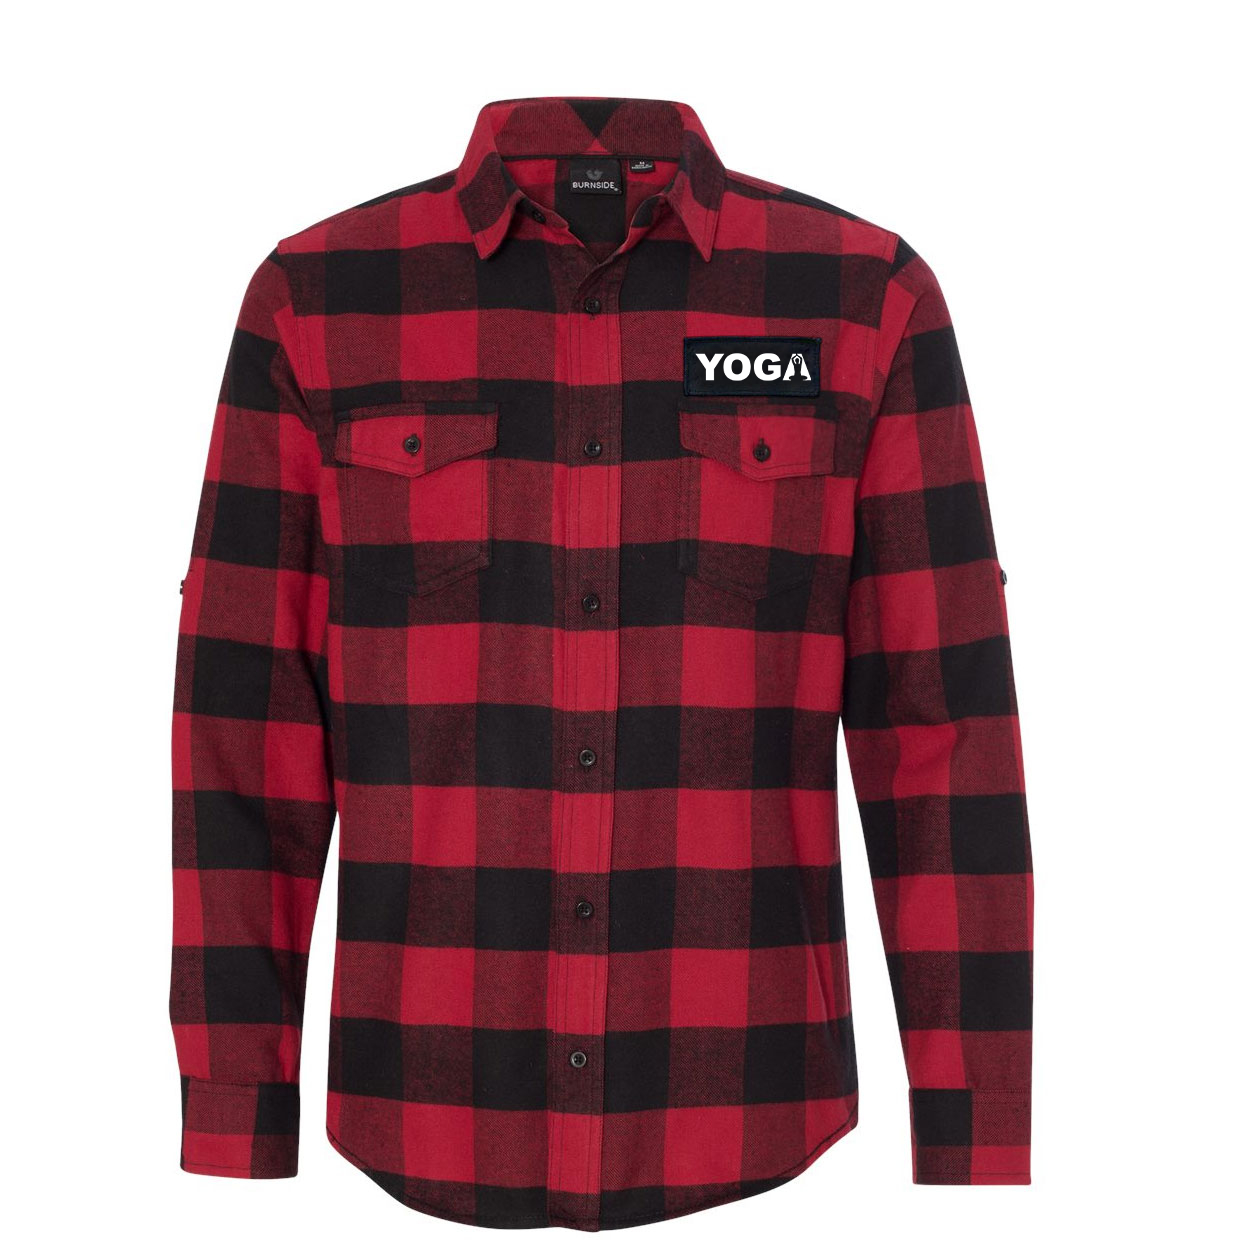 Yoga Meditation Logo Classic Unisex Long Sleeve Woven Patch Flannel Shirt Red/Black Buffalo (White Logo)